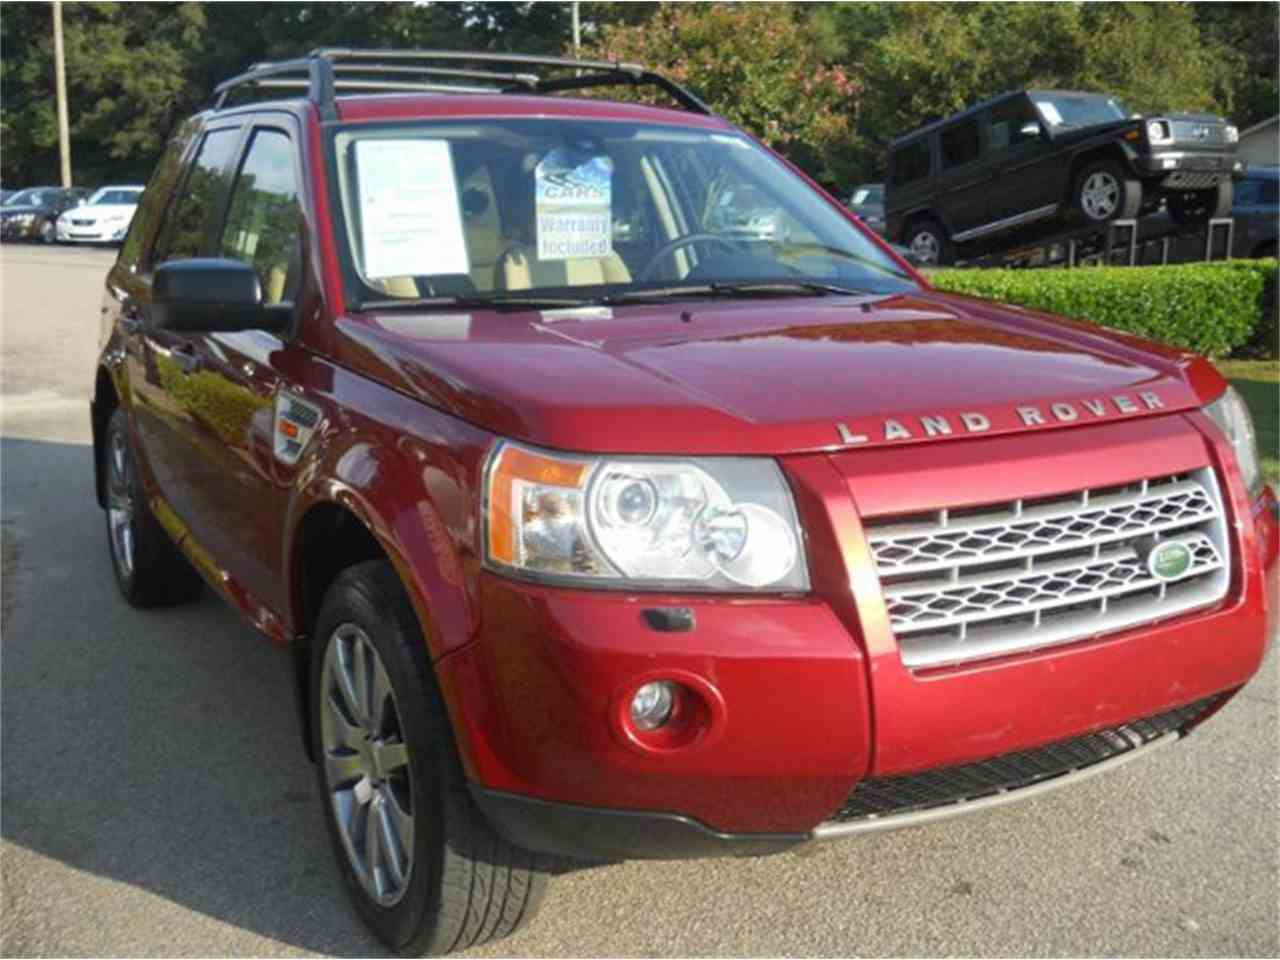 carfinder te on land sale for auctions left en nc of copart silver title in auto view landrover rover salvage lot raleigh online certificate hse